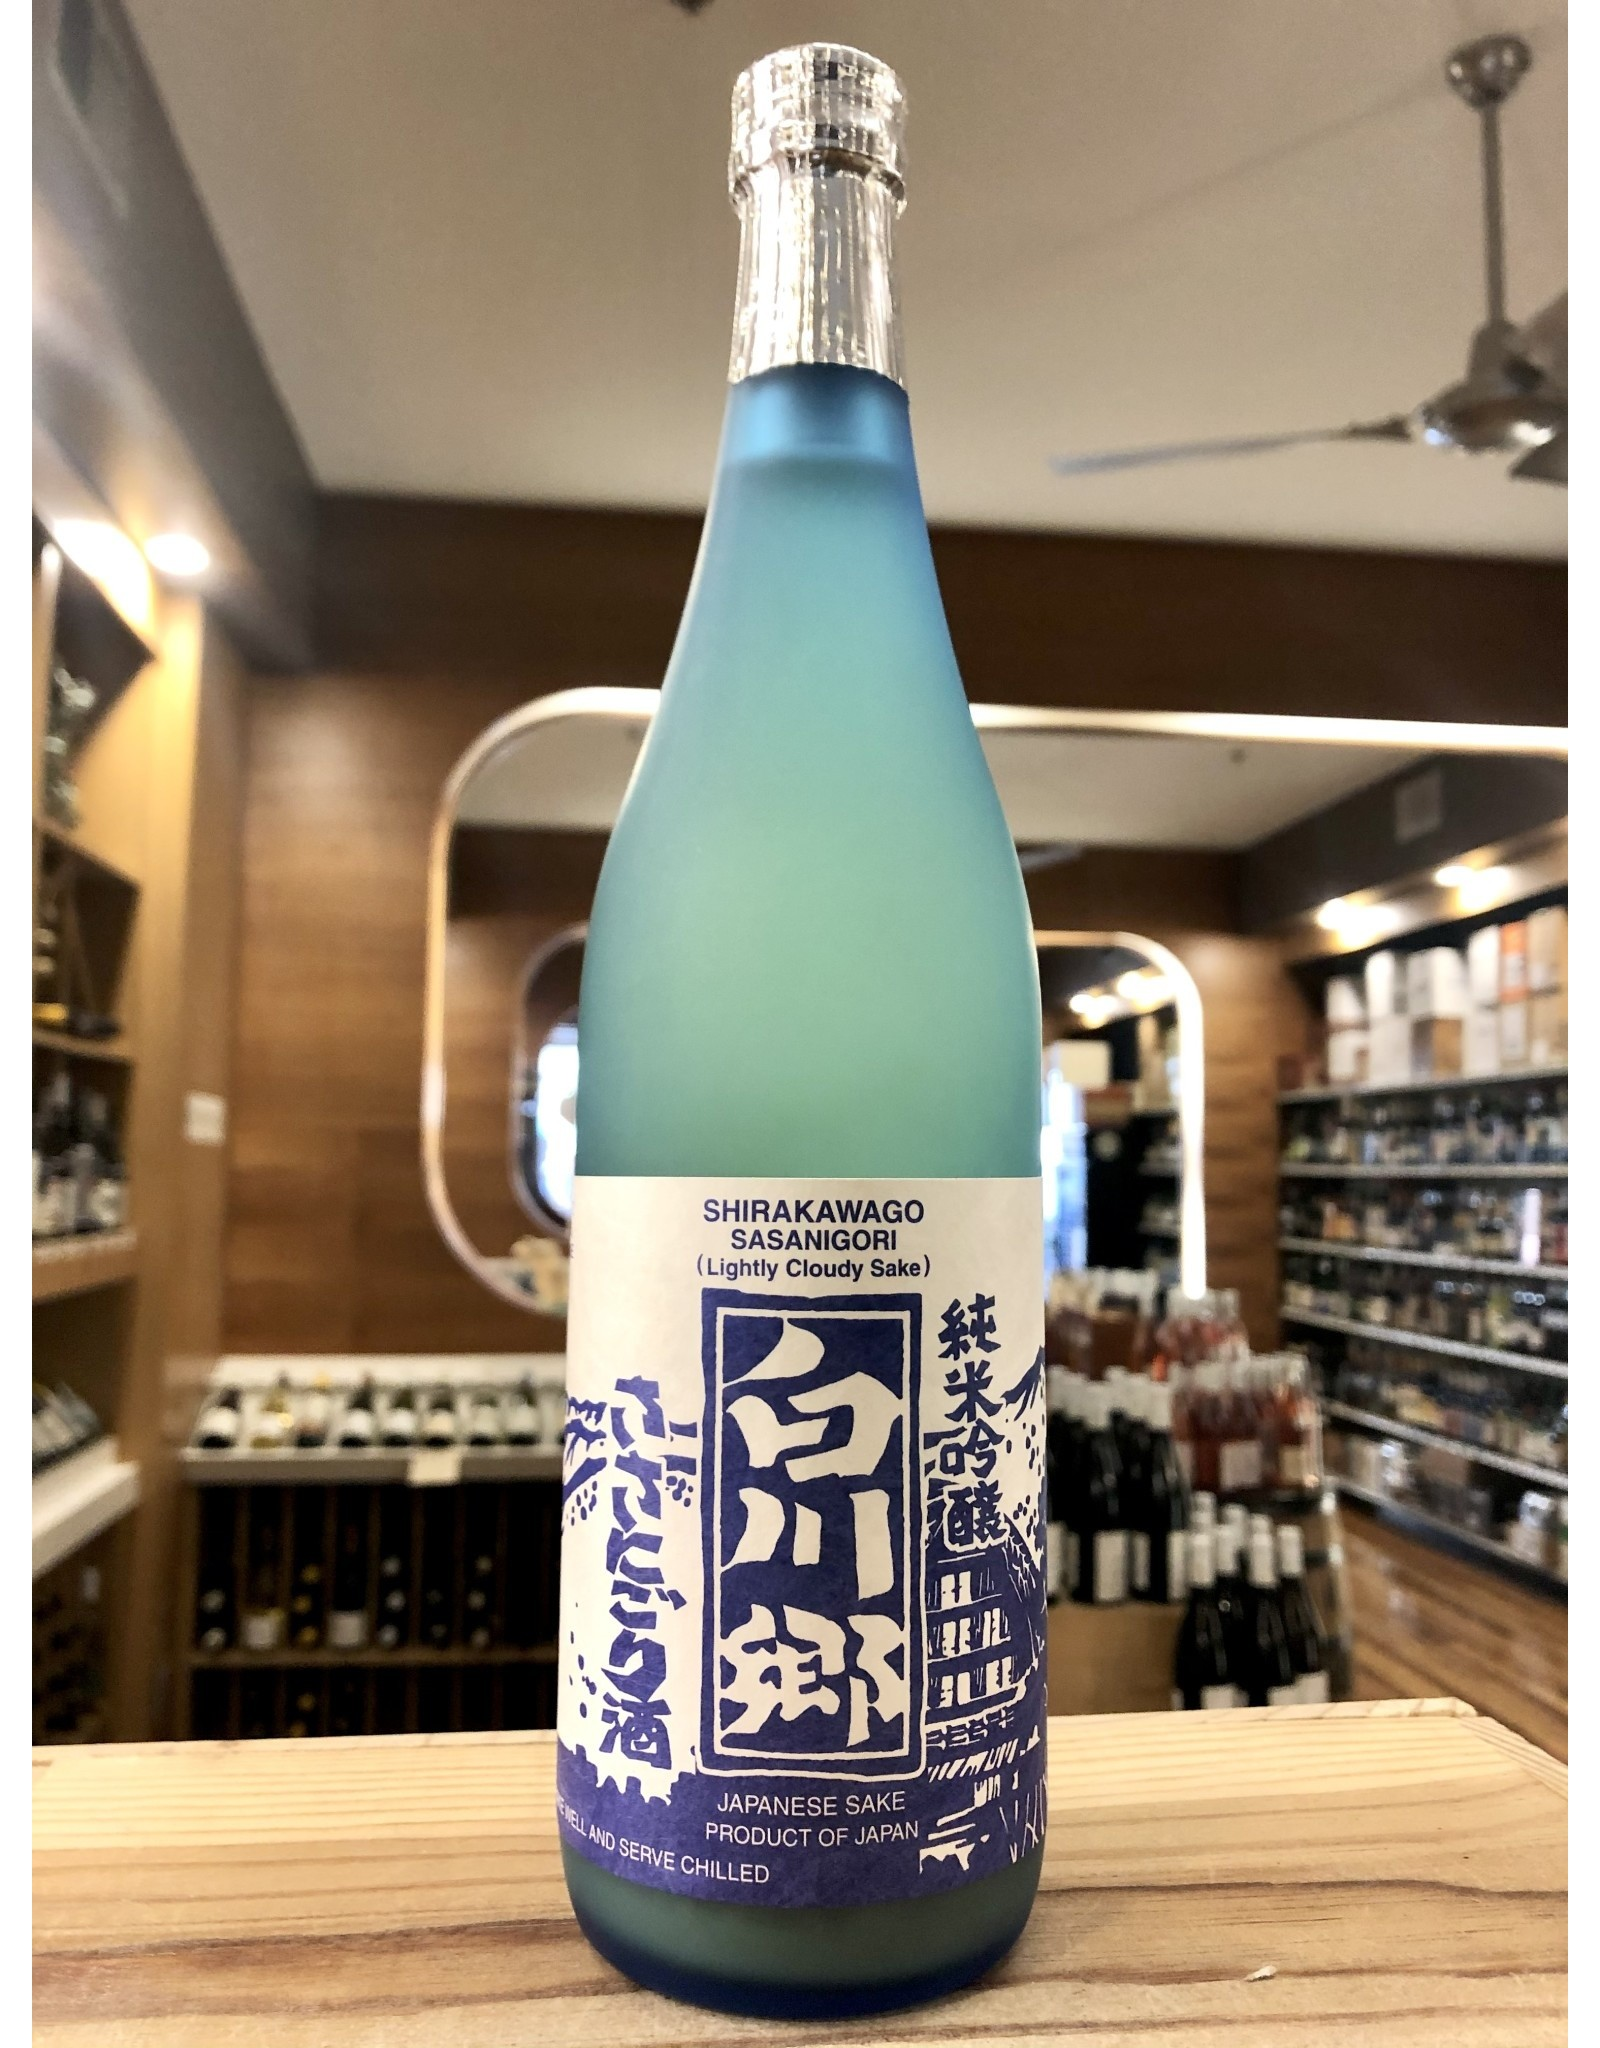 Shirakawago Sasahigori  - 720 ML